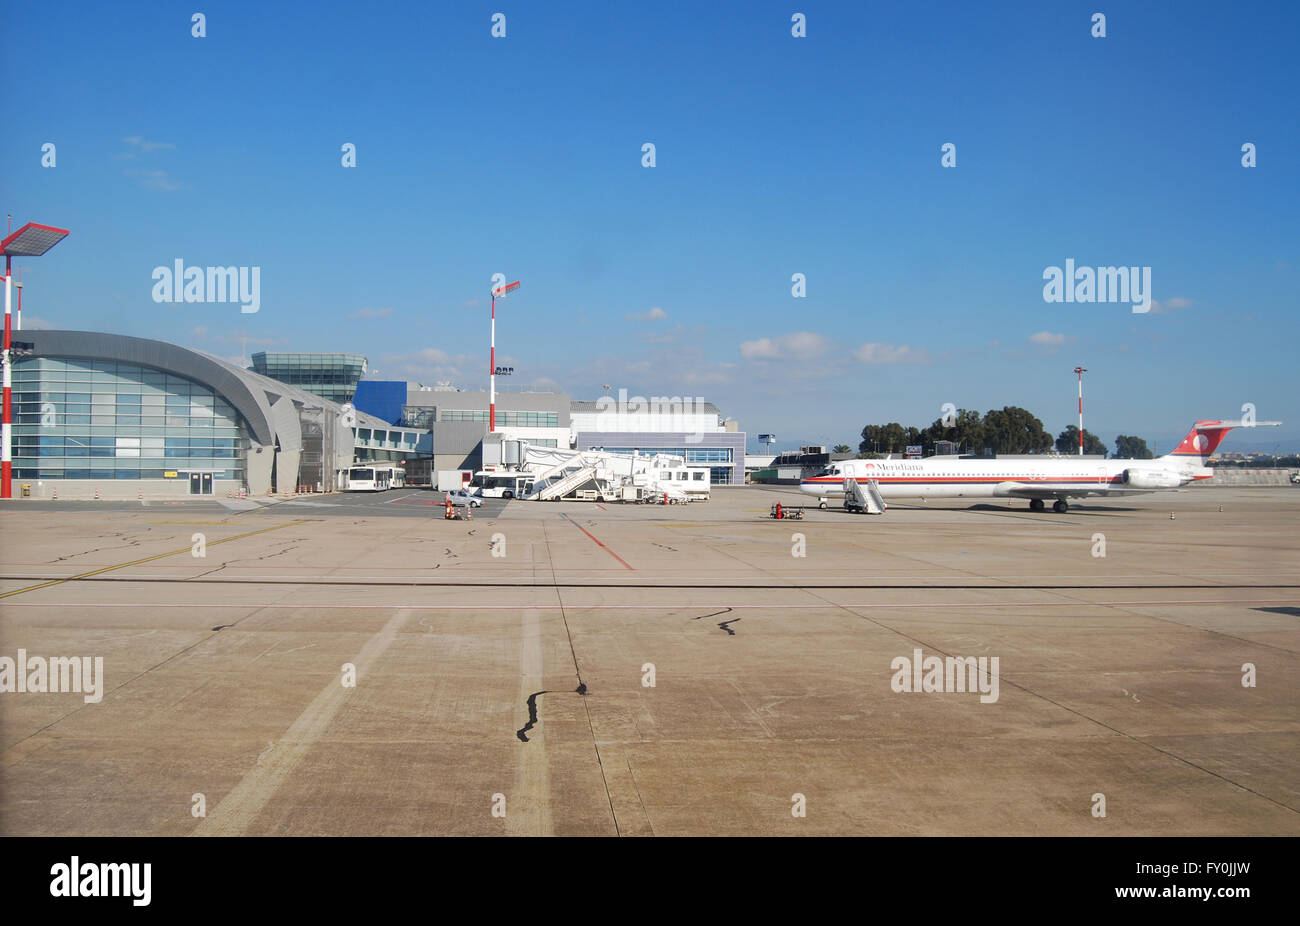 Cagliari, Italy - January 24, 2010: Meridiana Airplane in the airport at Cagliari. Land and daytime as editorial - Stock Image